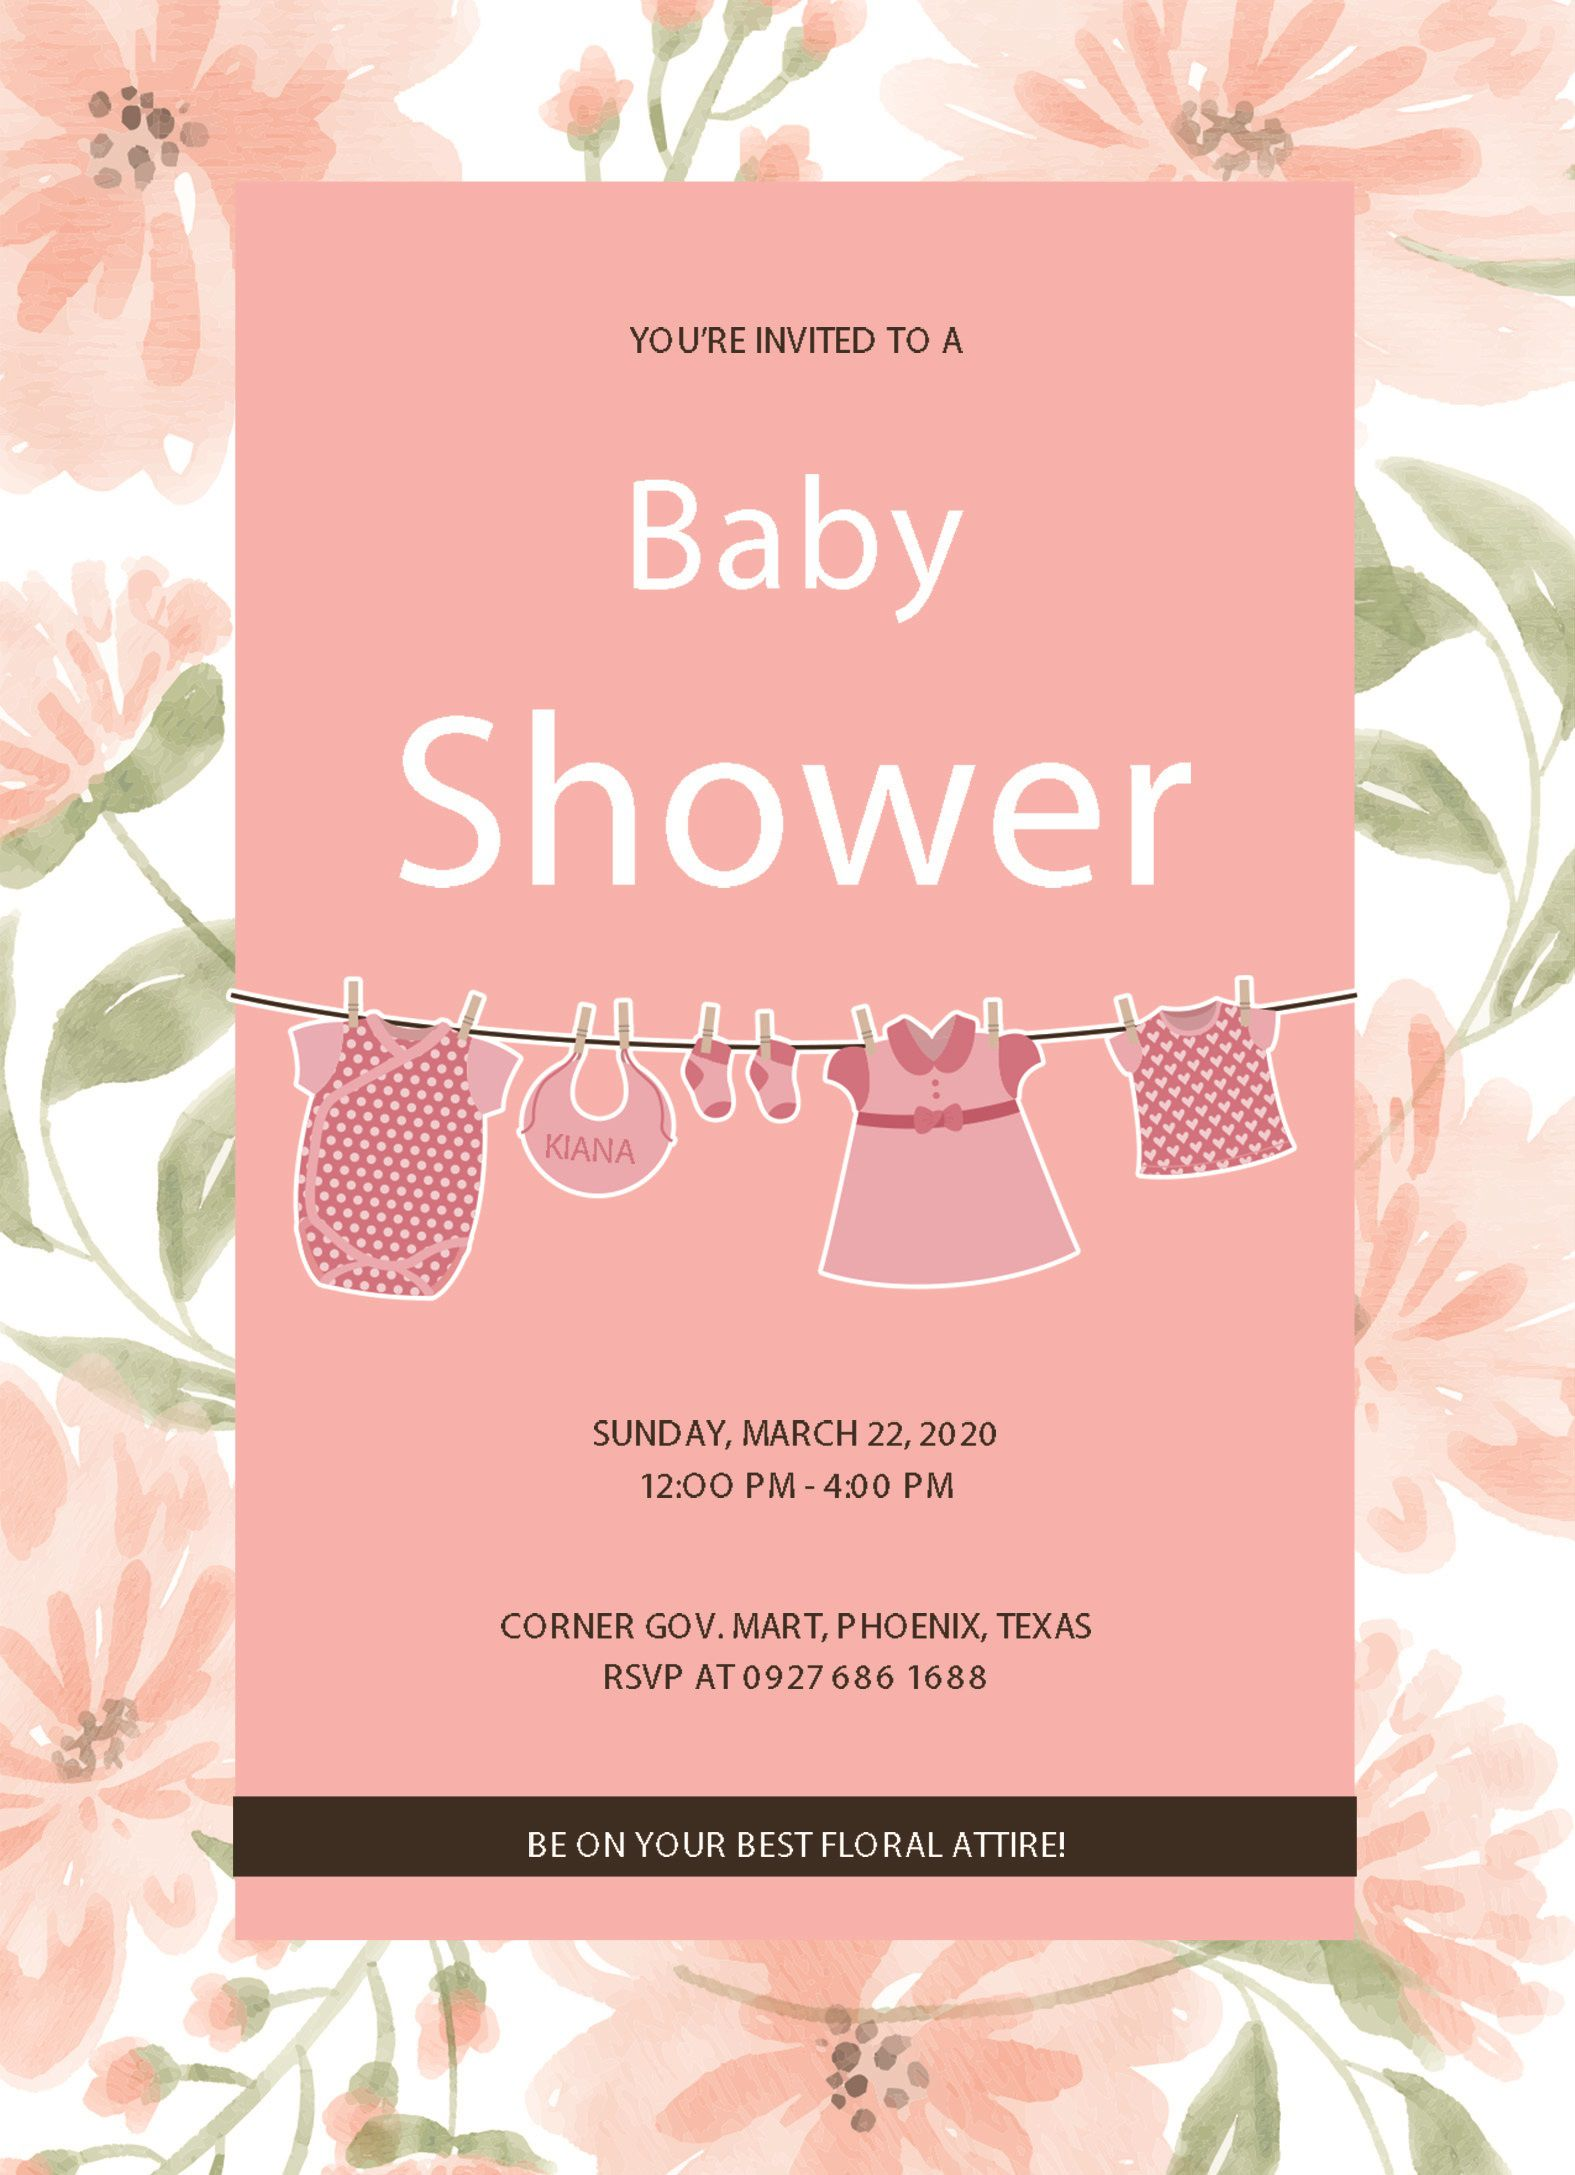 005 Breathtaking Baby Shower Invitation Template Editable High Resolution  Free Surprise In Gujarati TwinFull